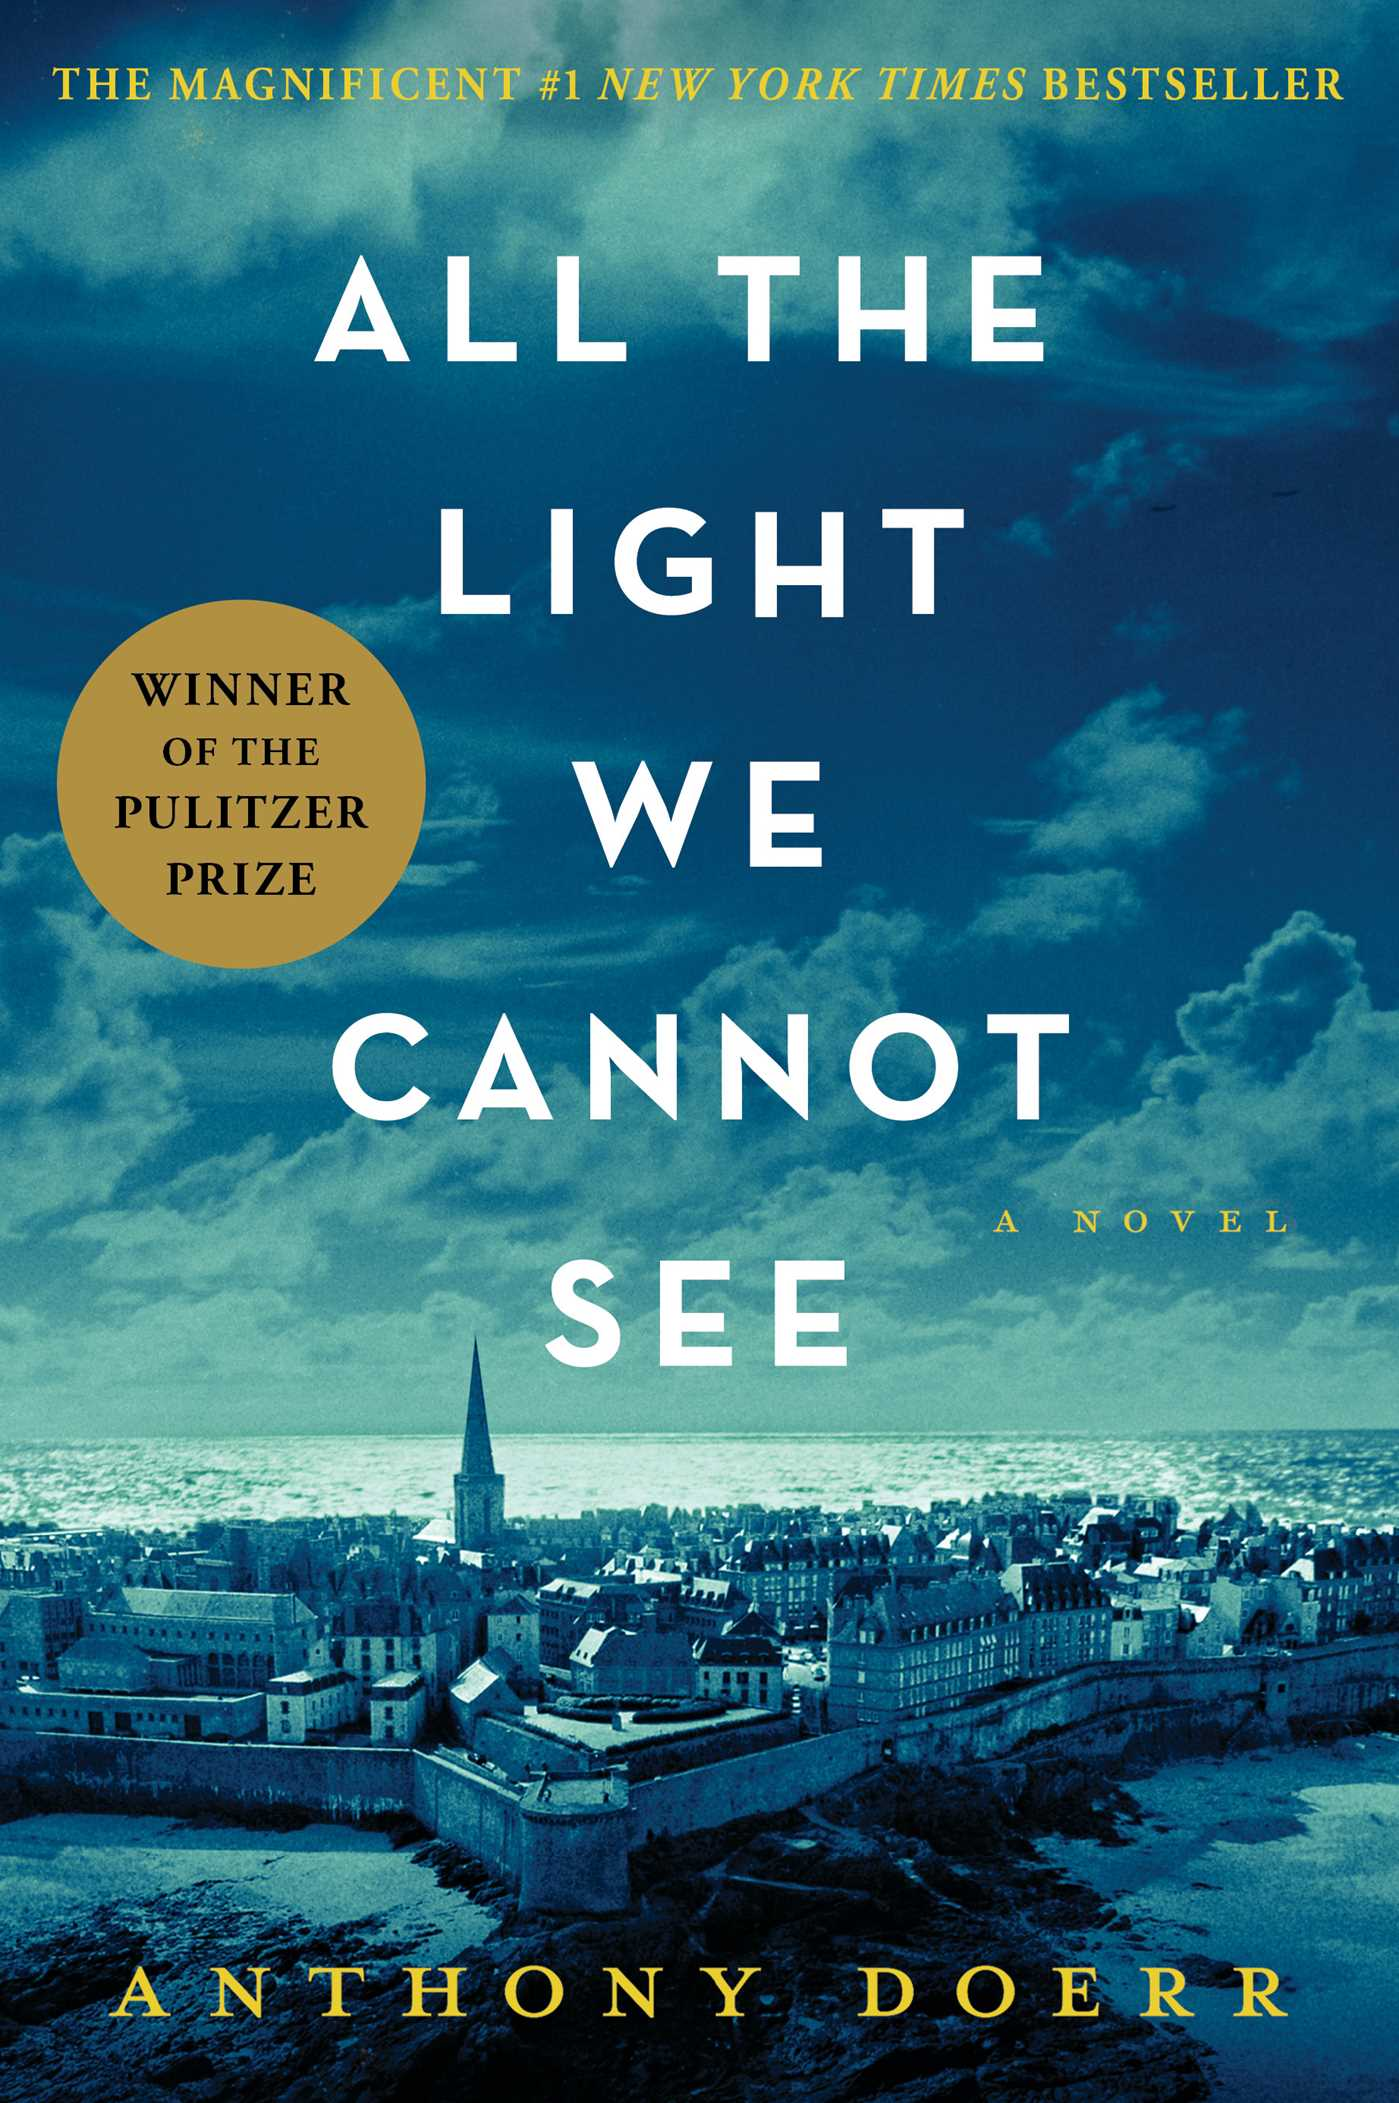 "#5. All the Light We Cannot See by Anthony Doerr. """"From the highly acclaimed, multiple award-winning Anthony Doerr, a stunningly ambitious and beautiful novel about a blind French girl and a German boy whose paths collide in occupied France as both try to survive the devastation of World War II."" www.bookstore.washington.edu (Image: Scribner Book Company)"